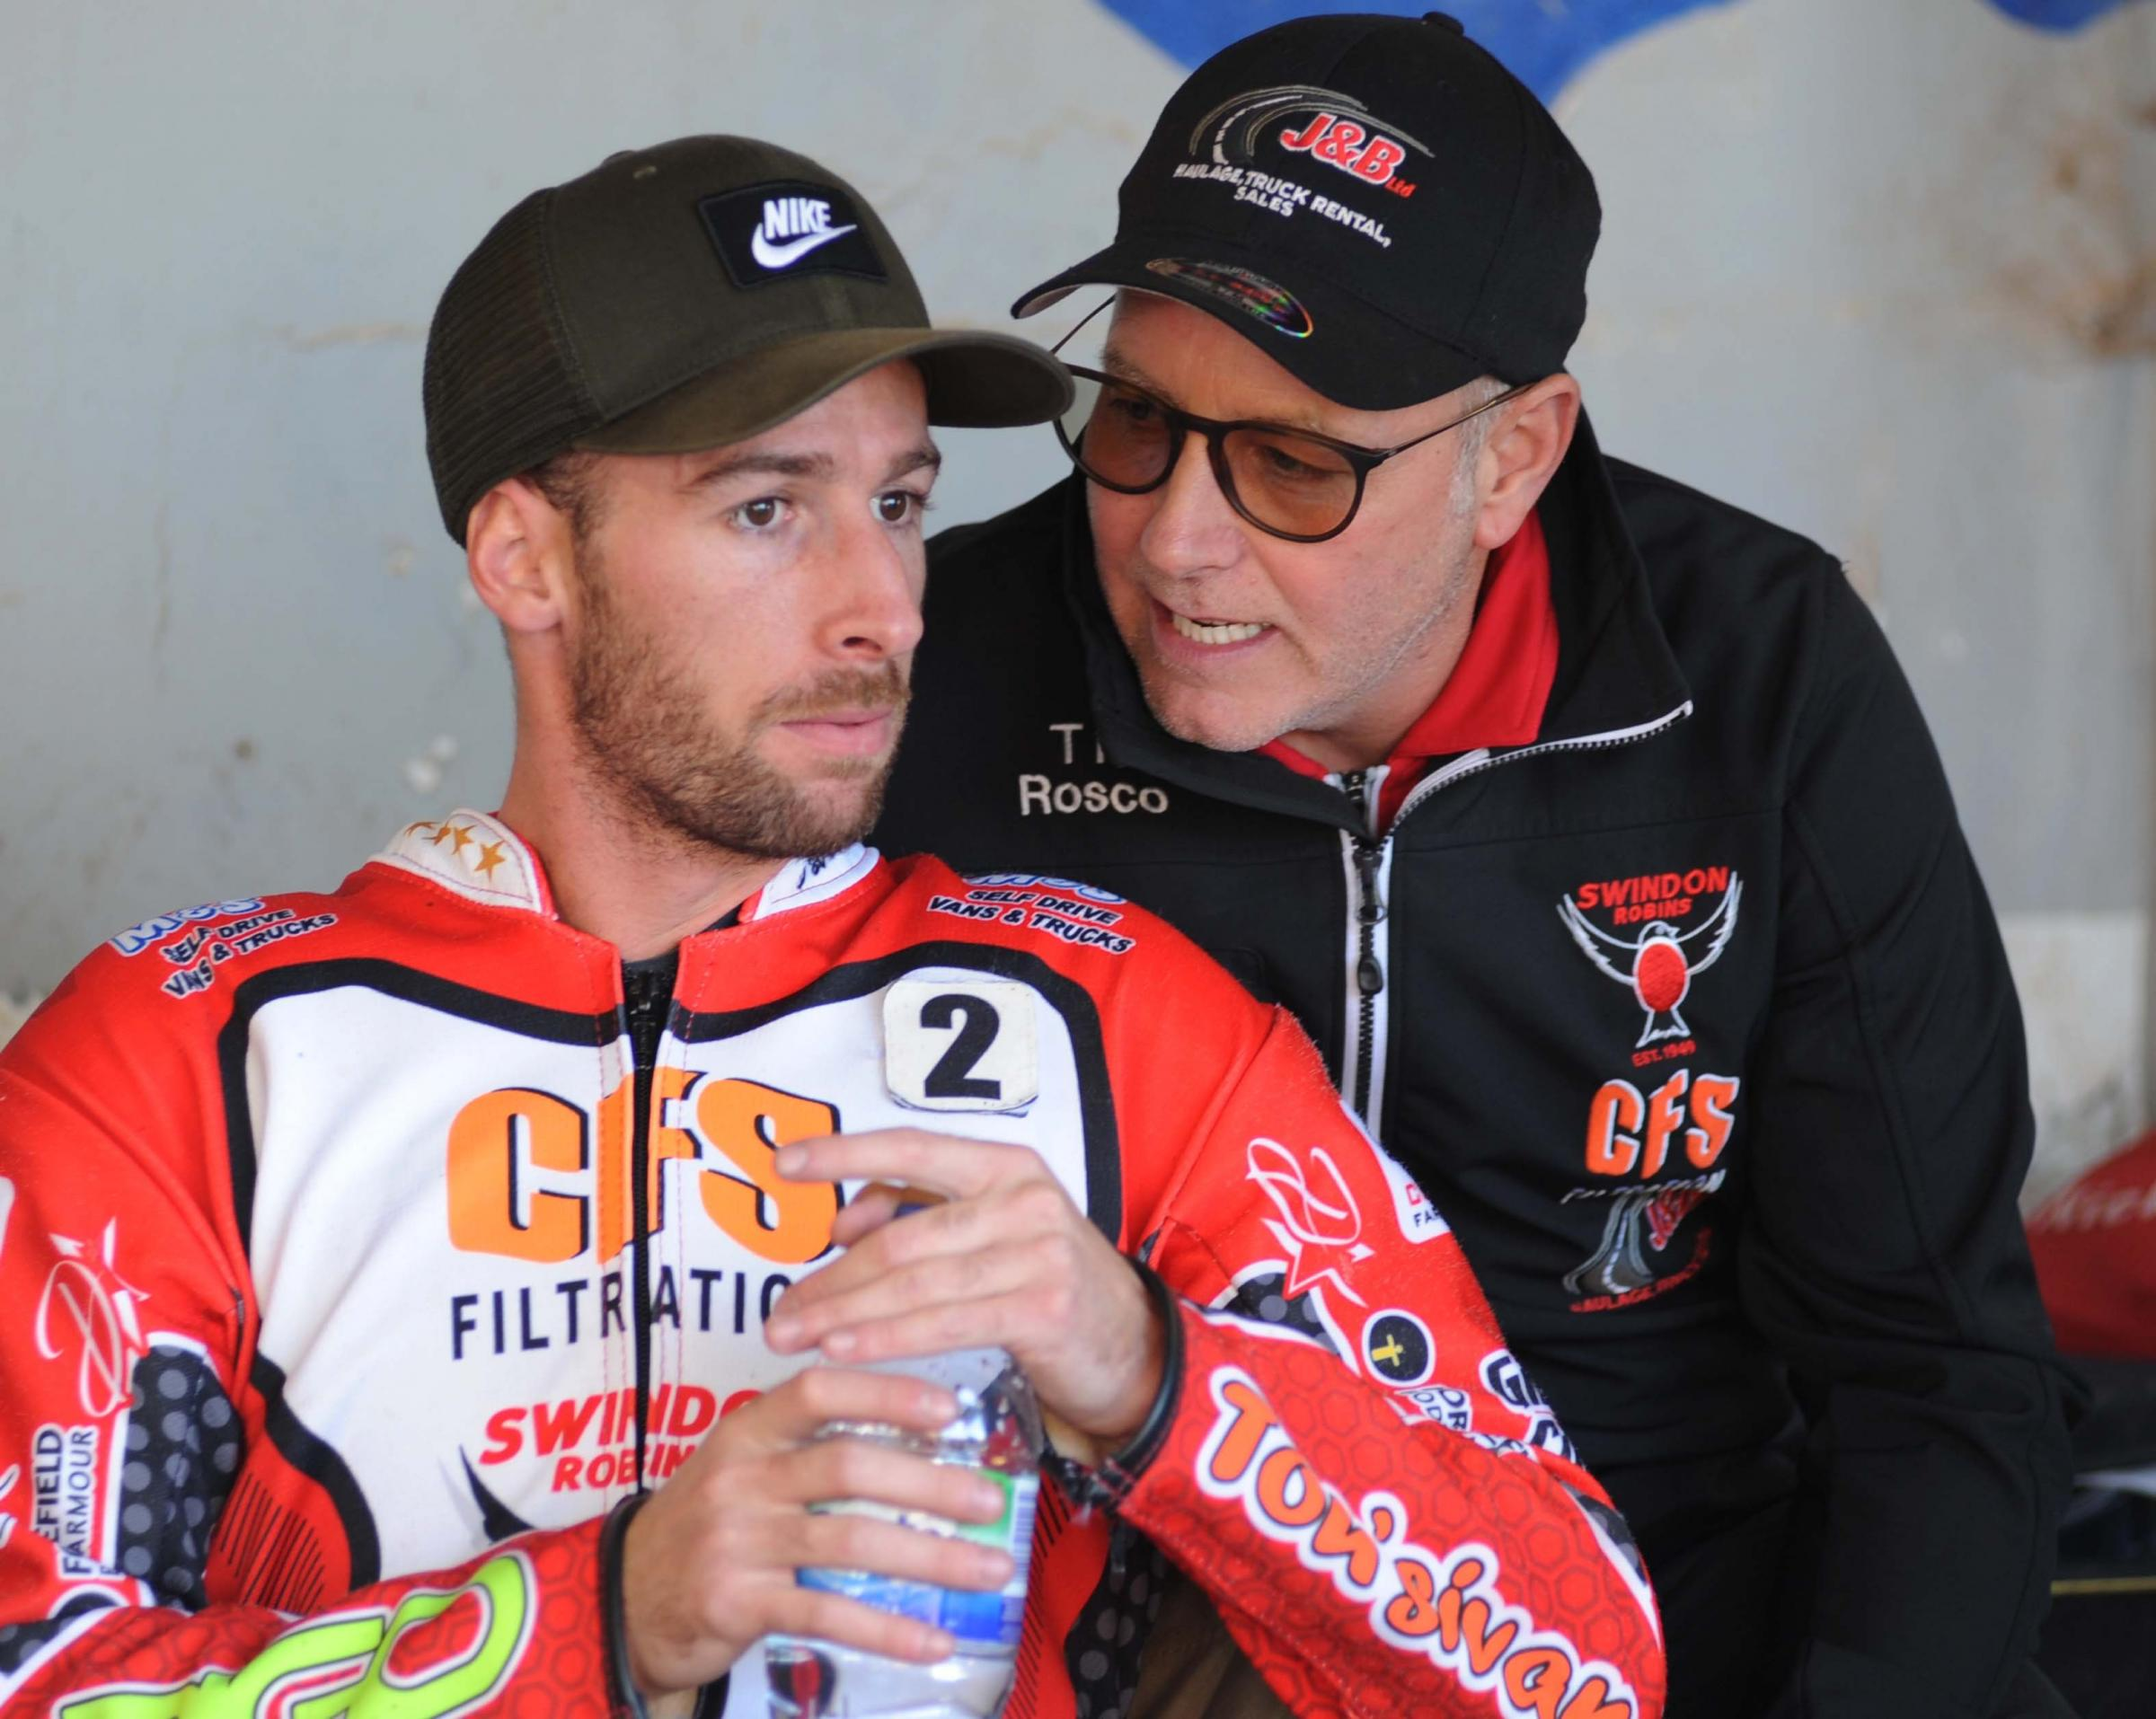 Swindon Robins v Belle Vue      Pic Dave Evans   16.8.18.Final instructions for David Bellego from Alun Rossiter..